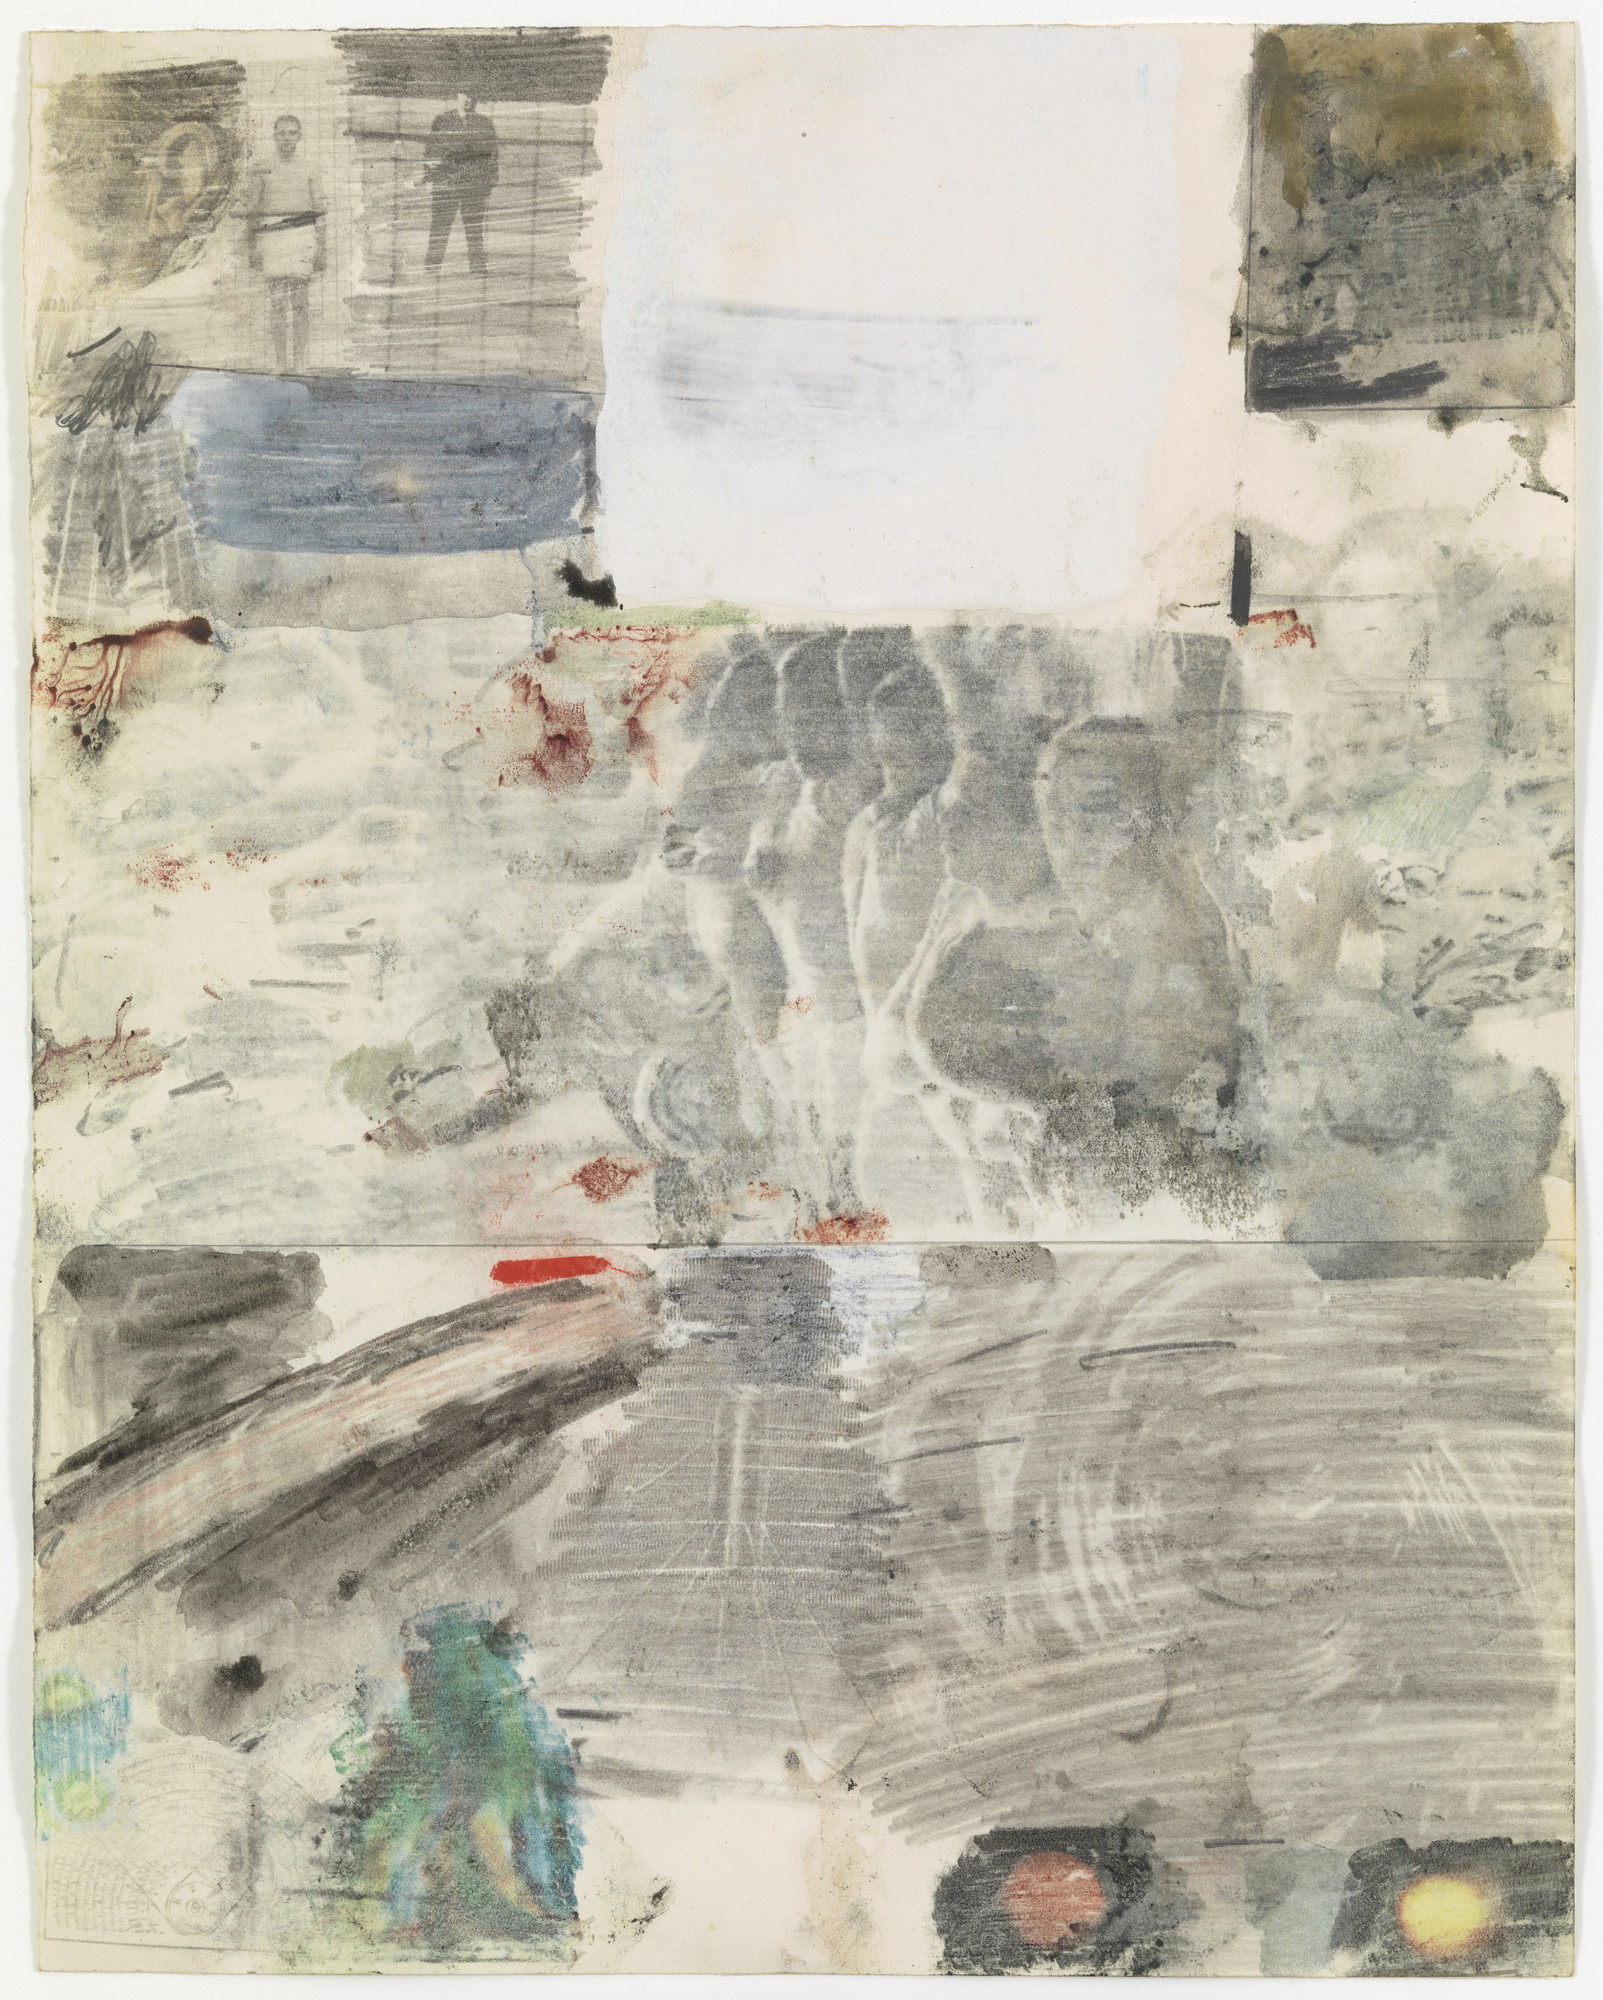 Robert Rauschenberg. Canto XXIX: Circle Eight, Bolgia 10, The Falsifiers: Class 1, The Alchemists from the series Thirty-Four Illustrations for Dante's Inferno. (1959-60)